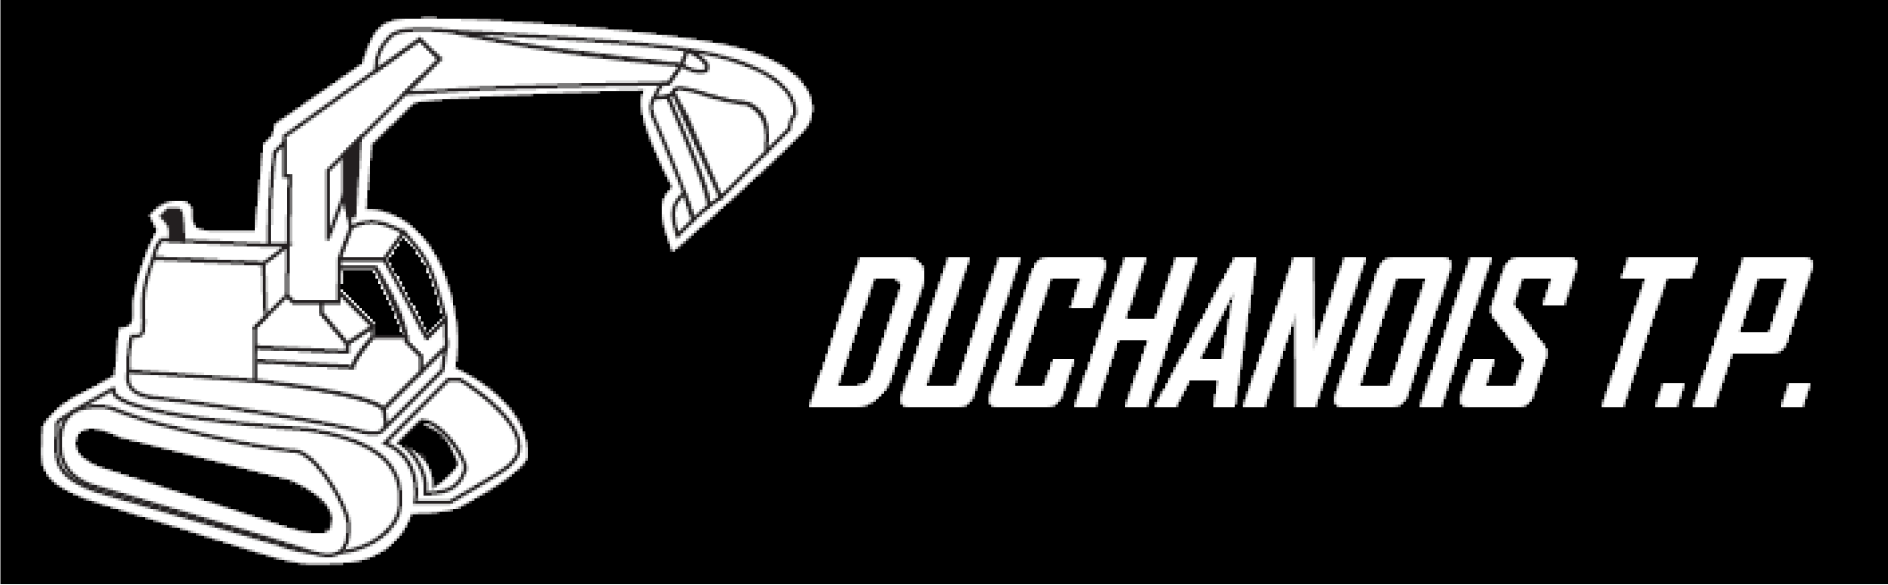 Duchanois TP